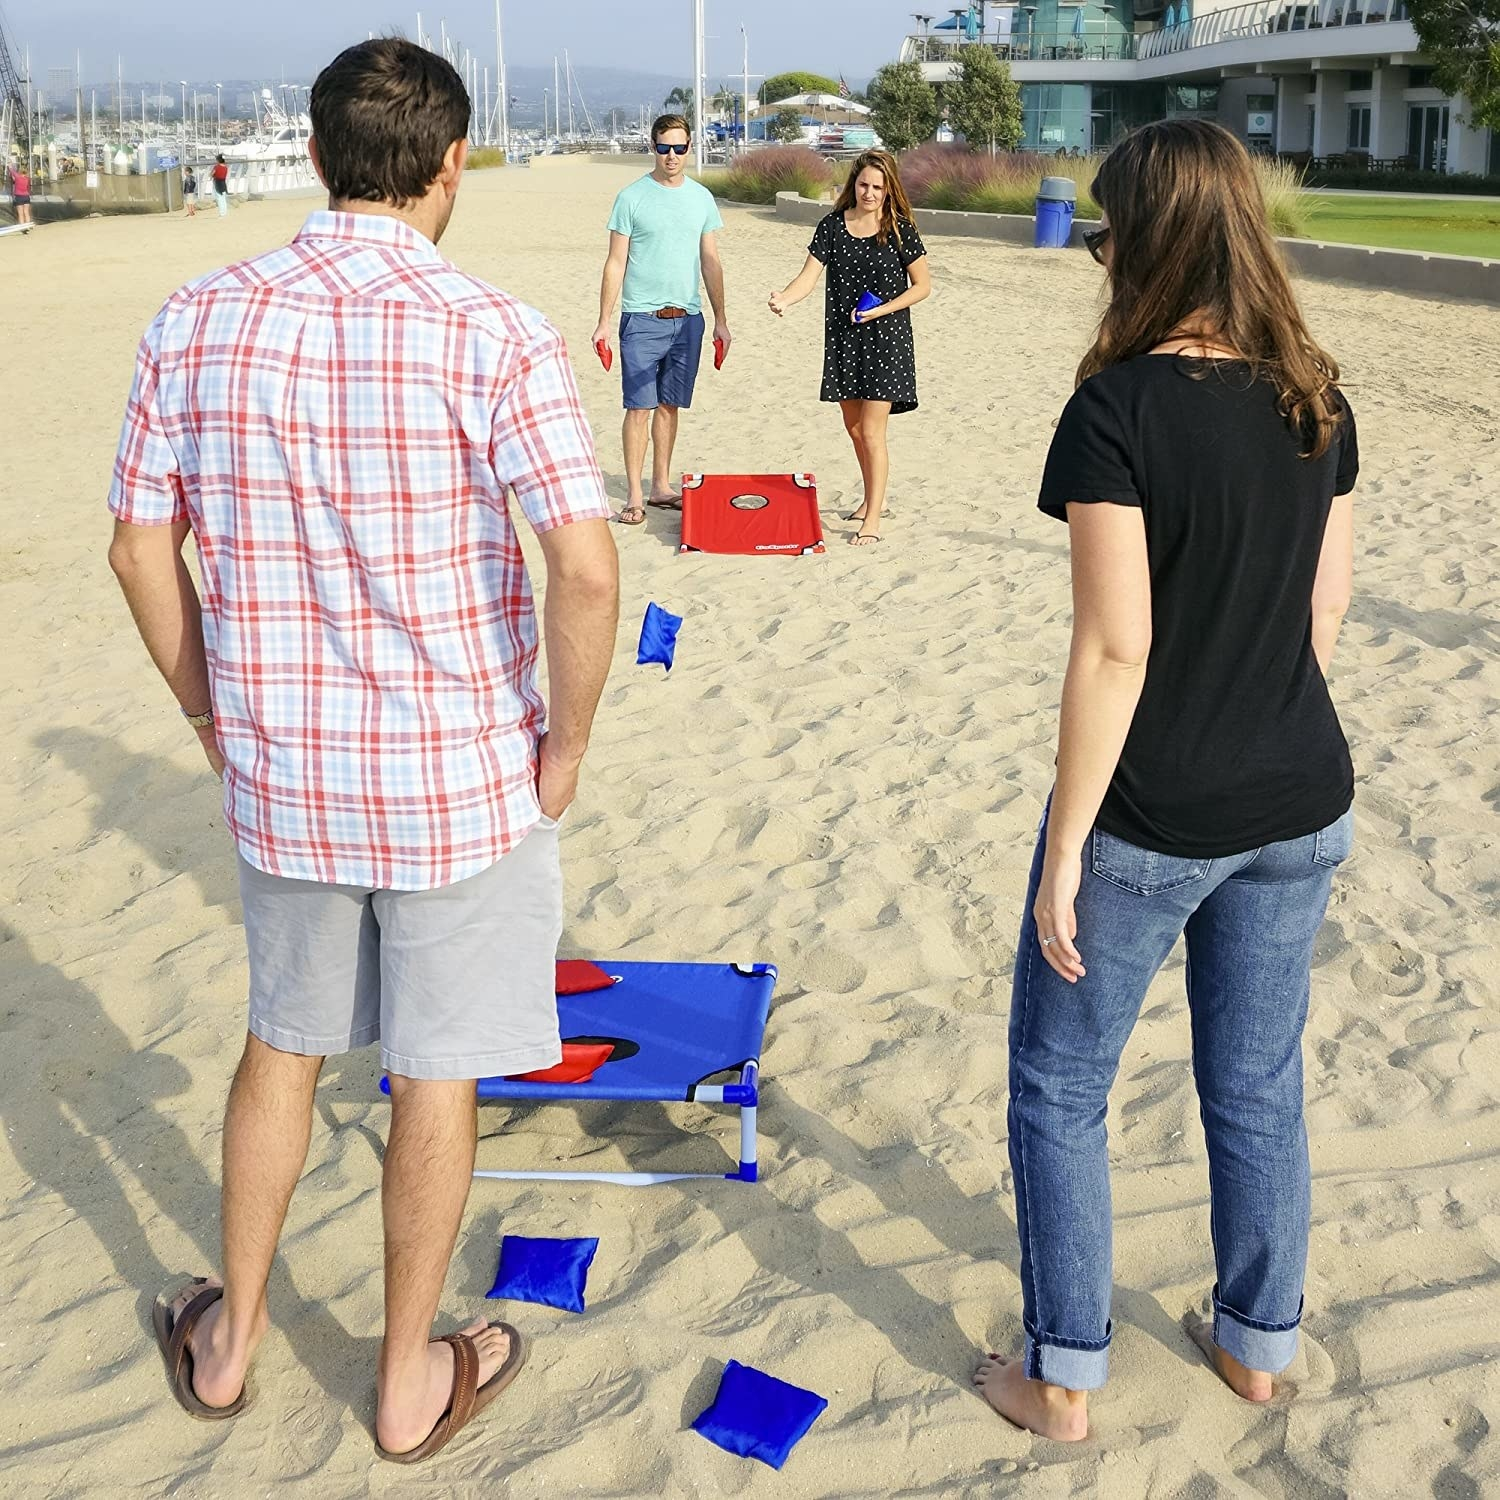 A group of people playing the cornhole game at the beach